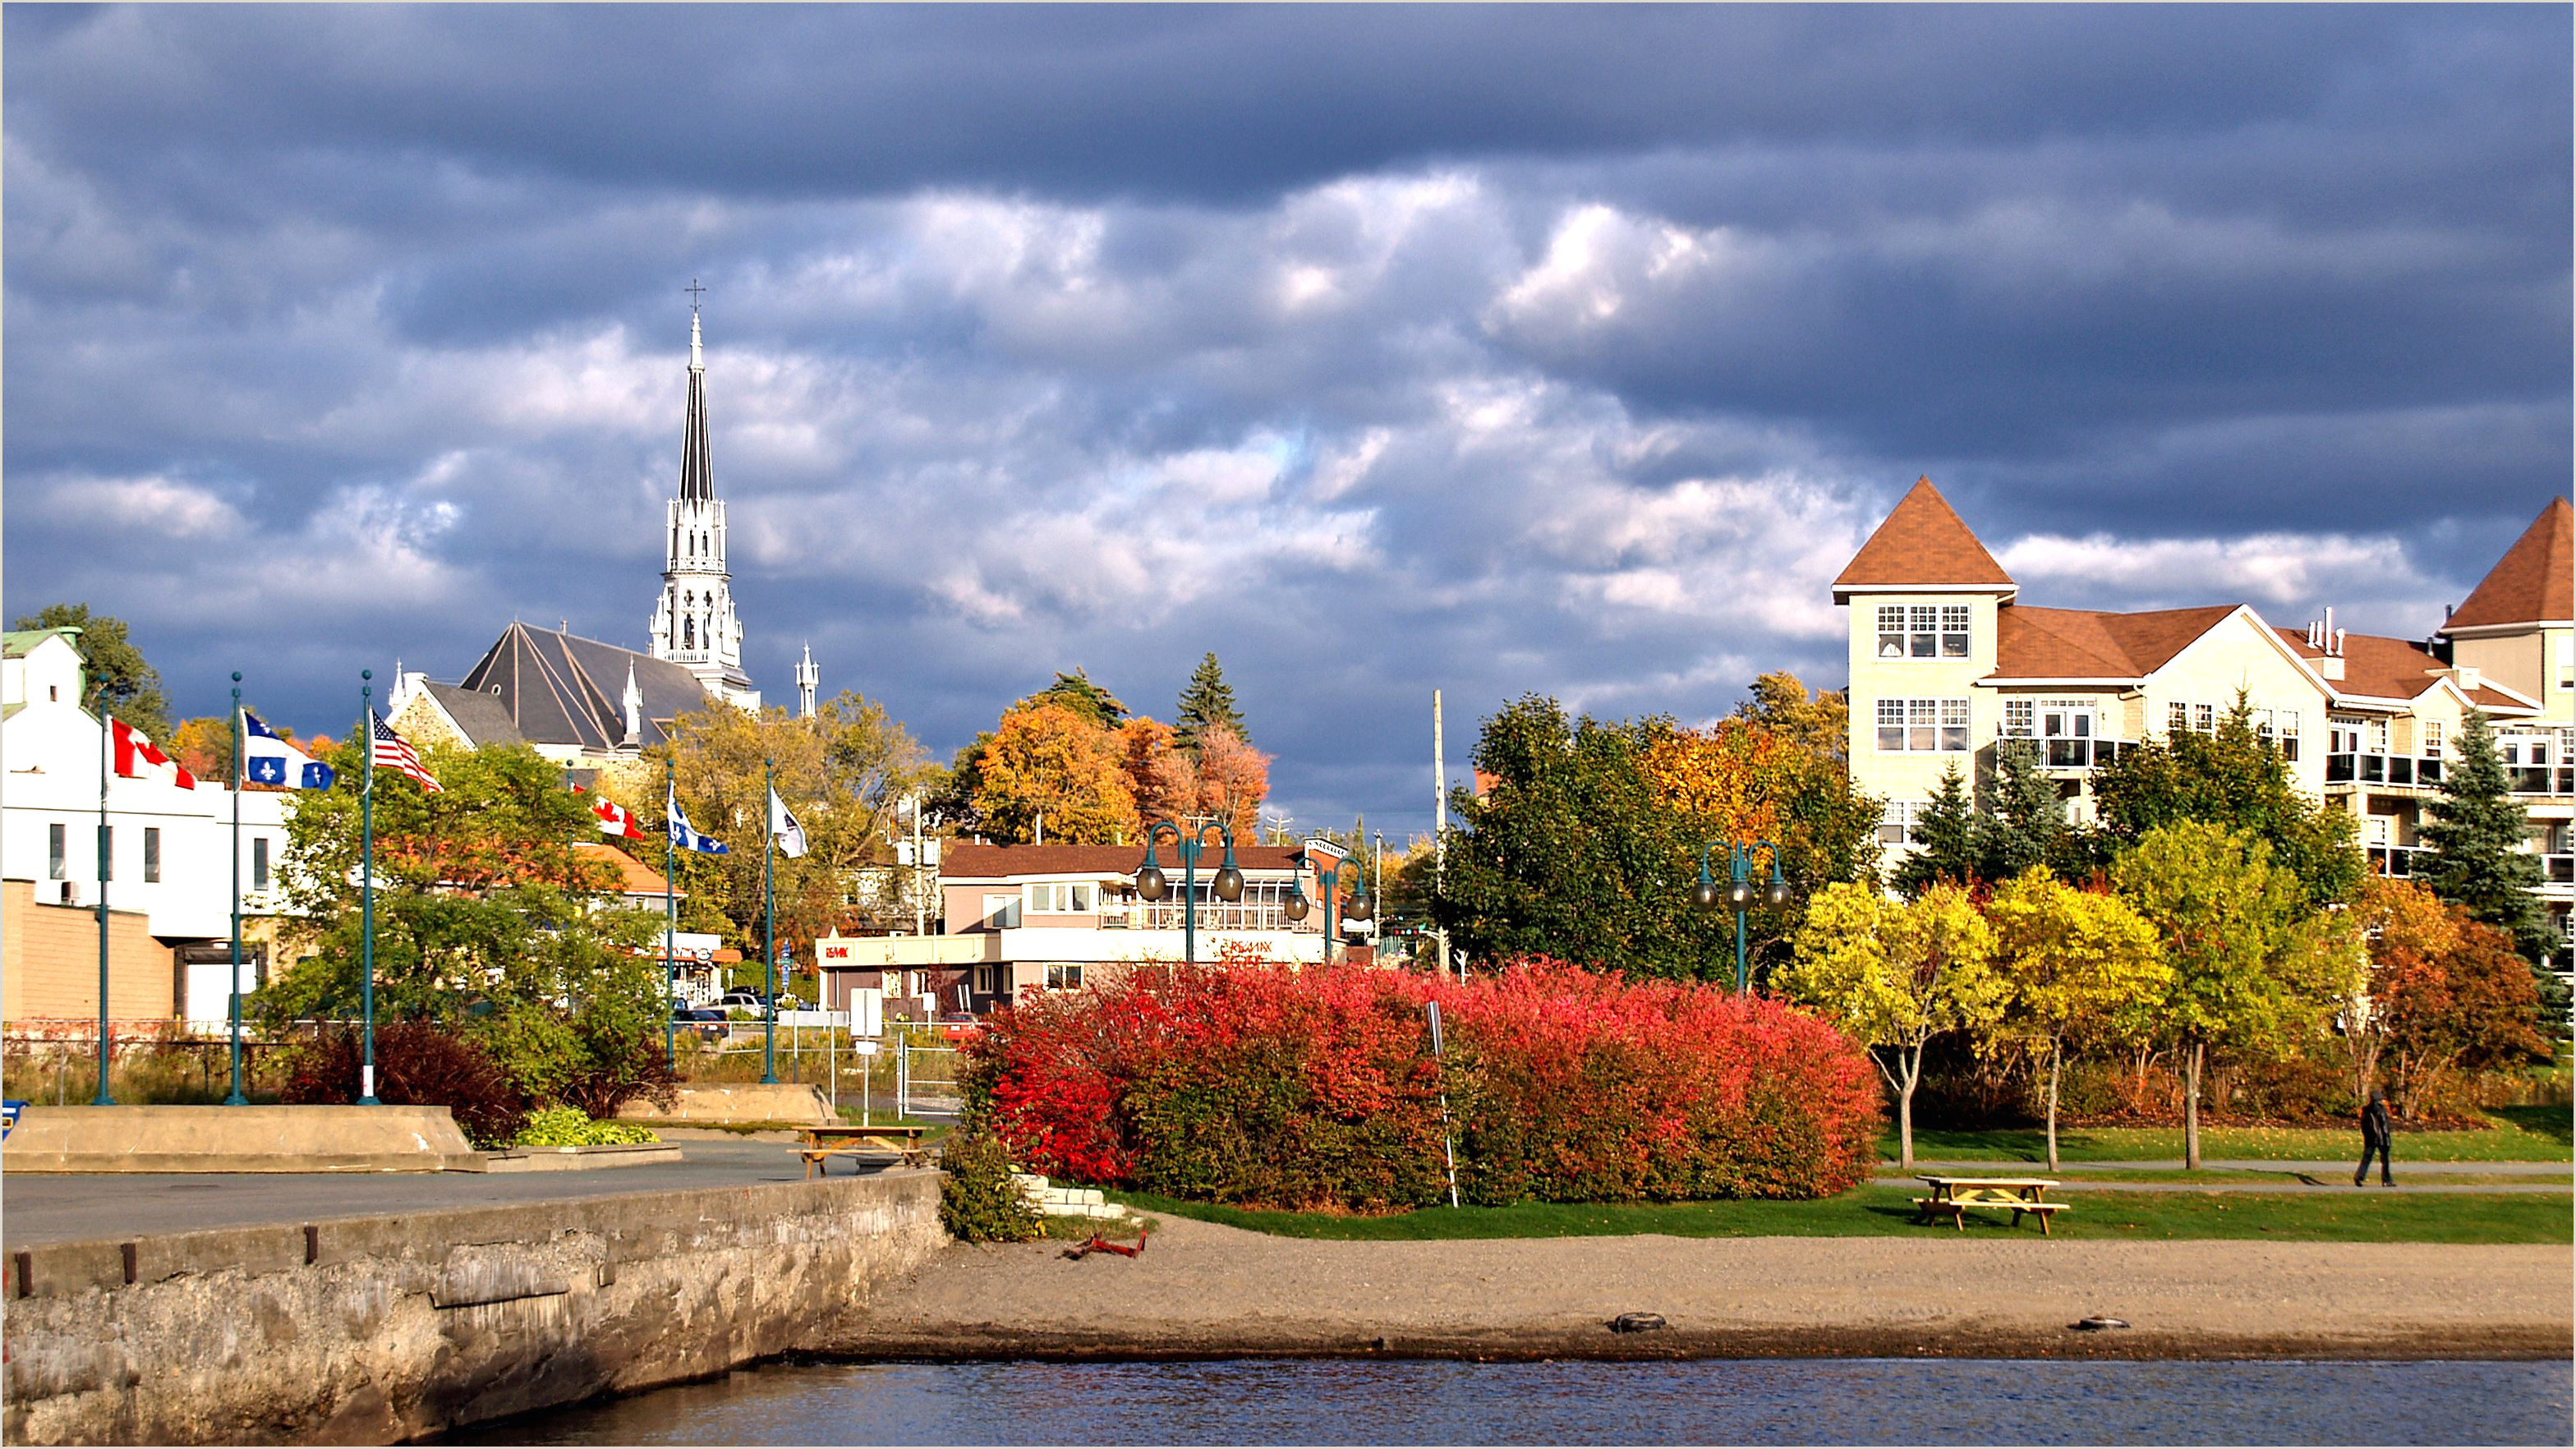 What To Do in Magog Quebec